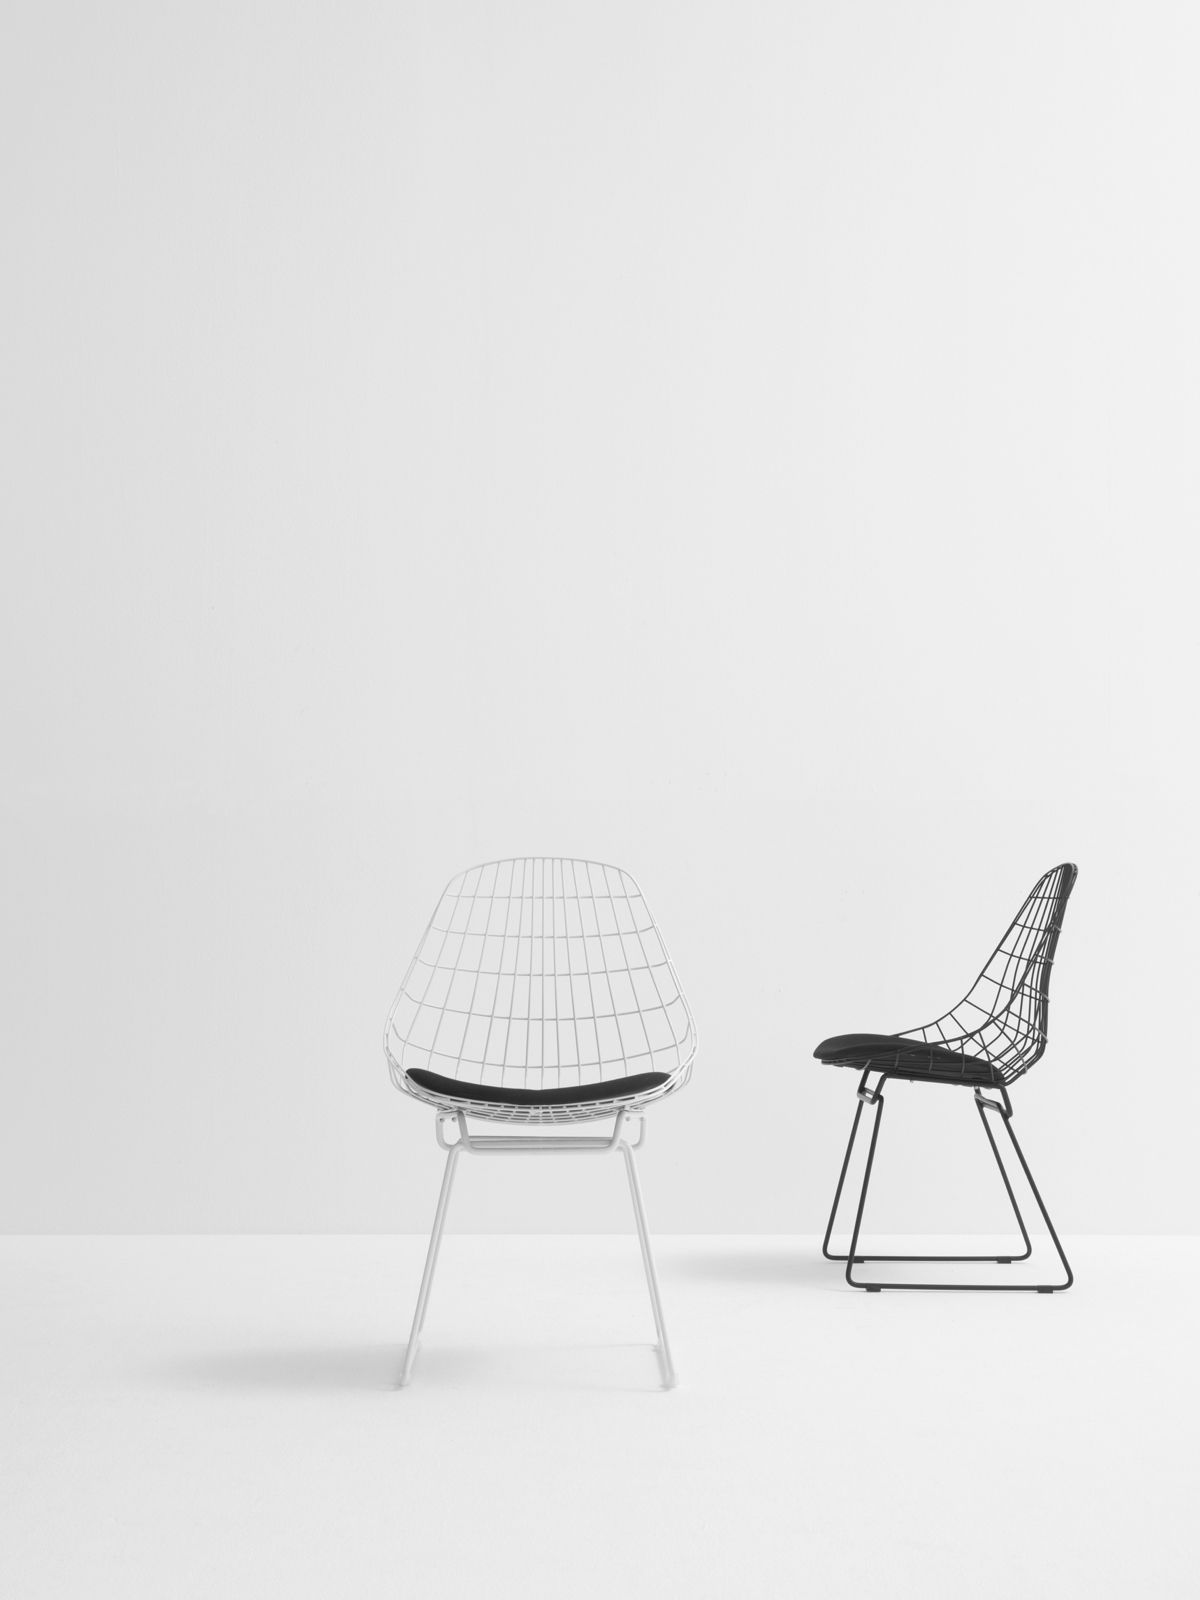 grid chairs